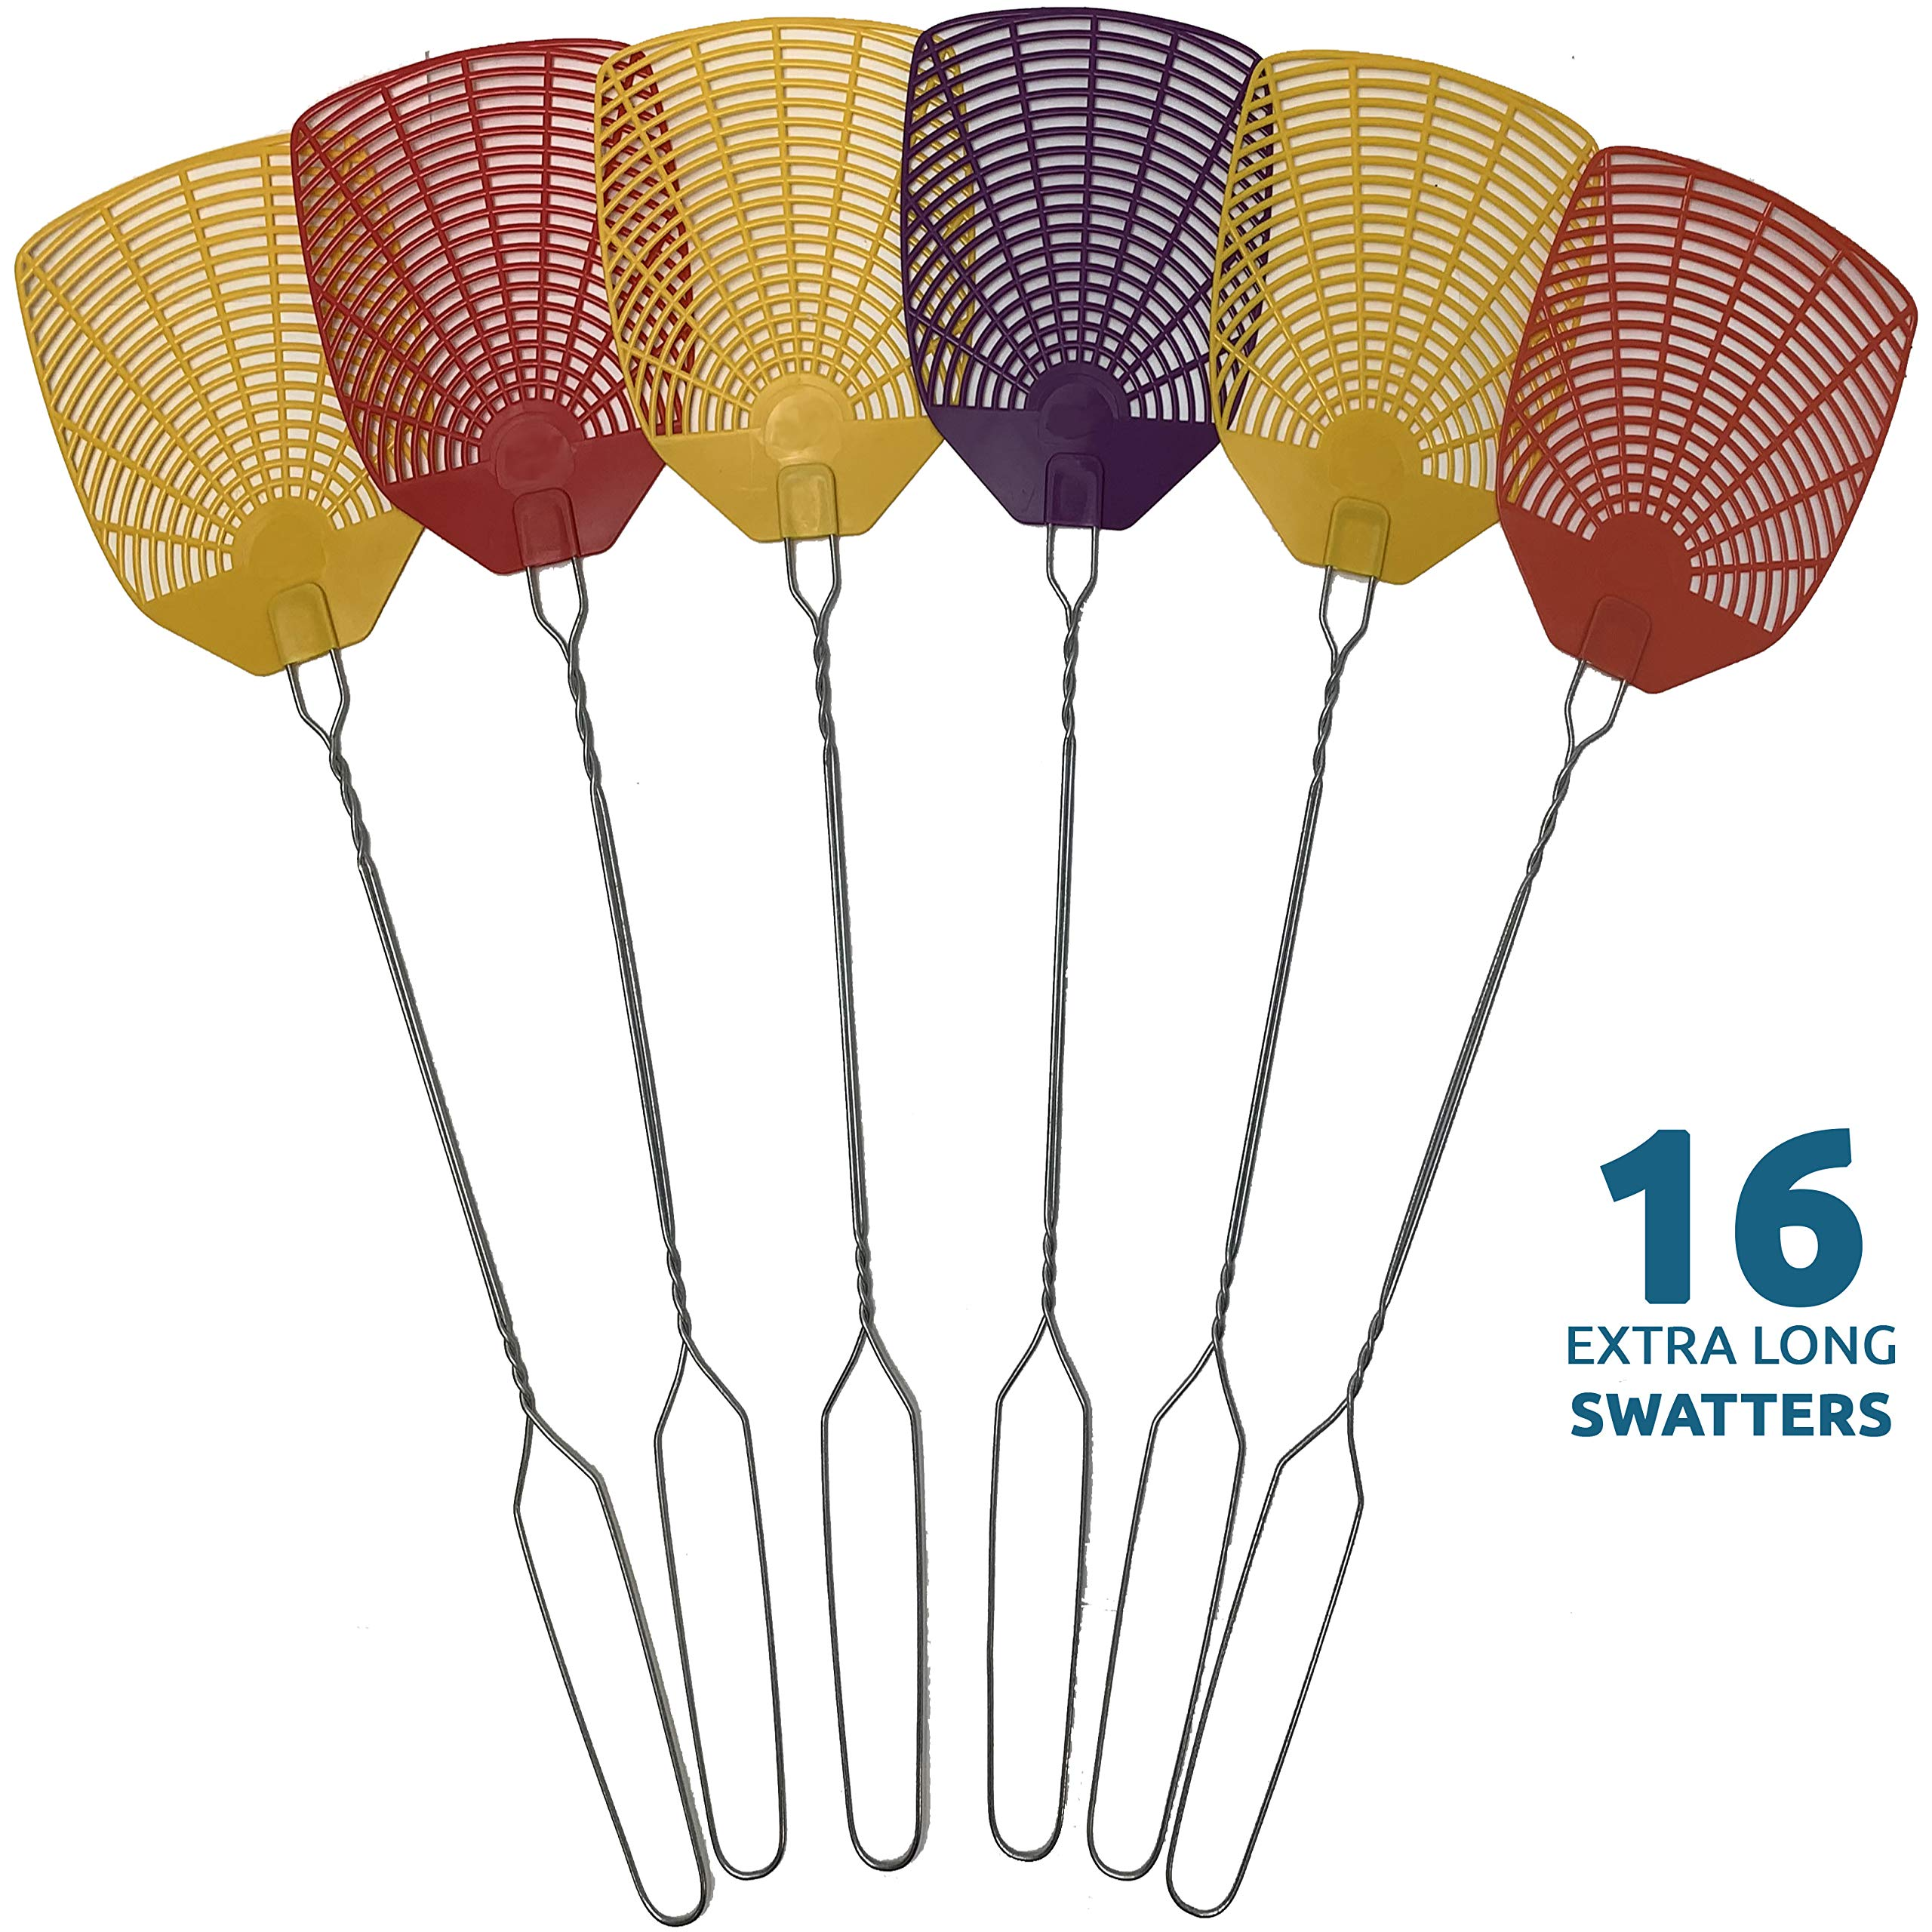 W4W Bug & Fly Swatter - Extra Long Handle 16 Pack Fly Swatters - Indoor/Outdoor - Pest Control flyswatter with 30 Labels by W4W